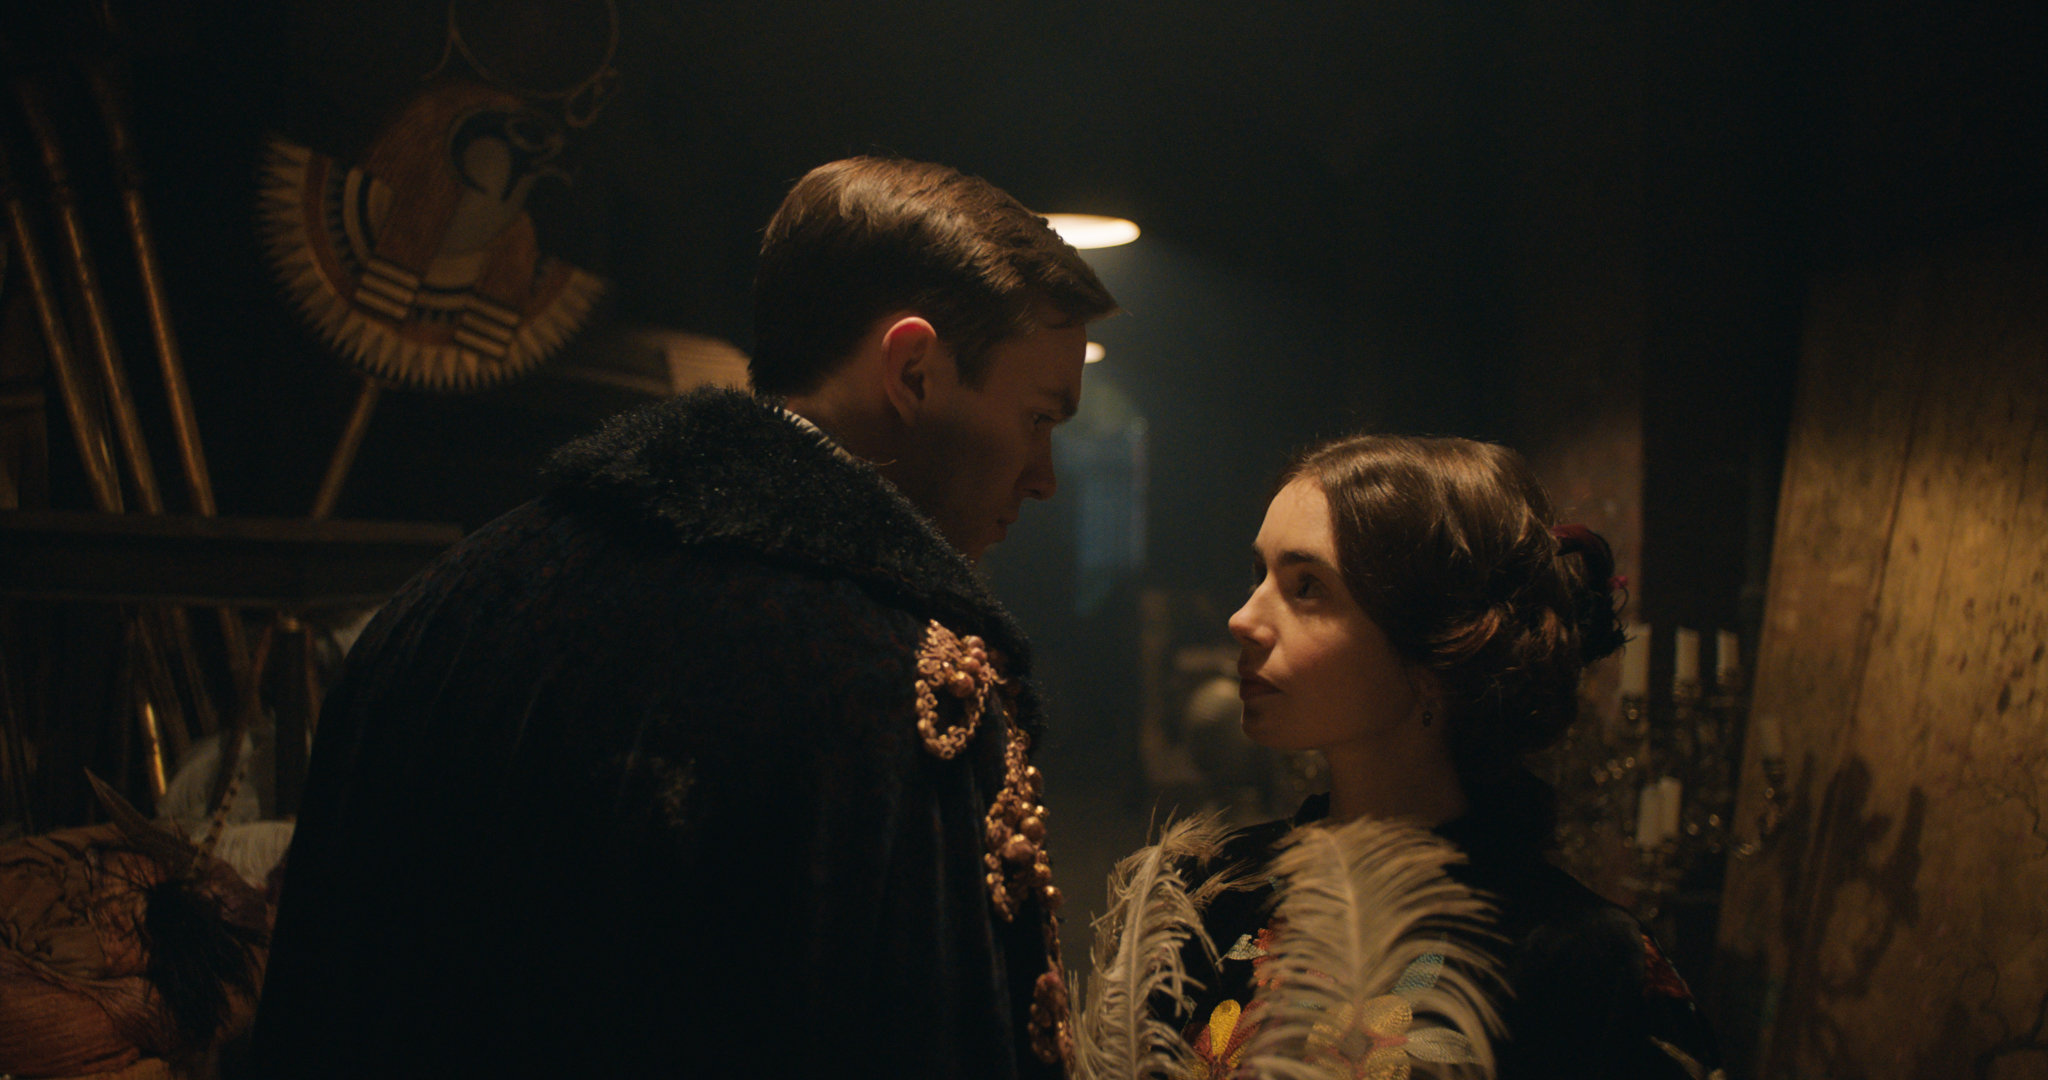 Nicholas Hoult and Lily Collins in the film 'Tolkien.' © 2019 Twentieth Century Fox Film Corporation All Rights Reserved